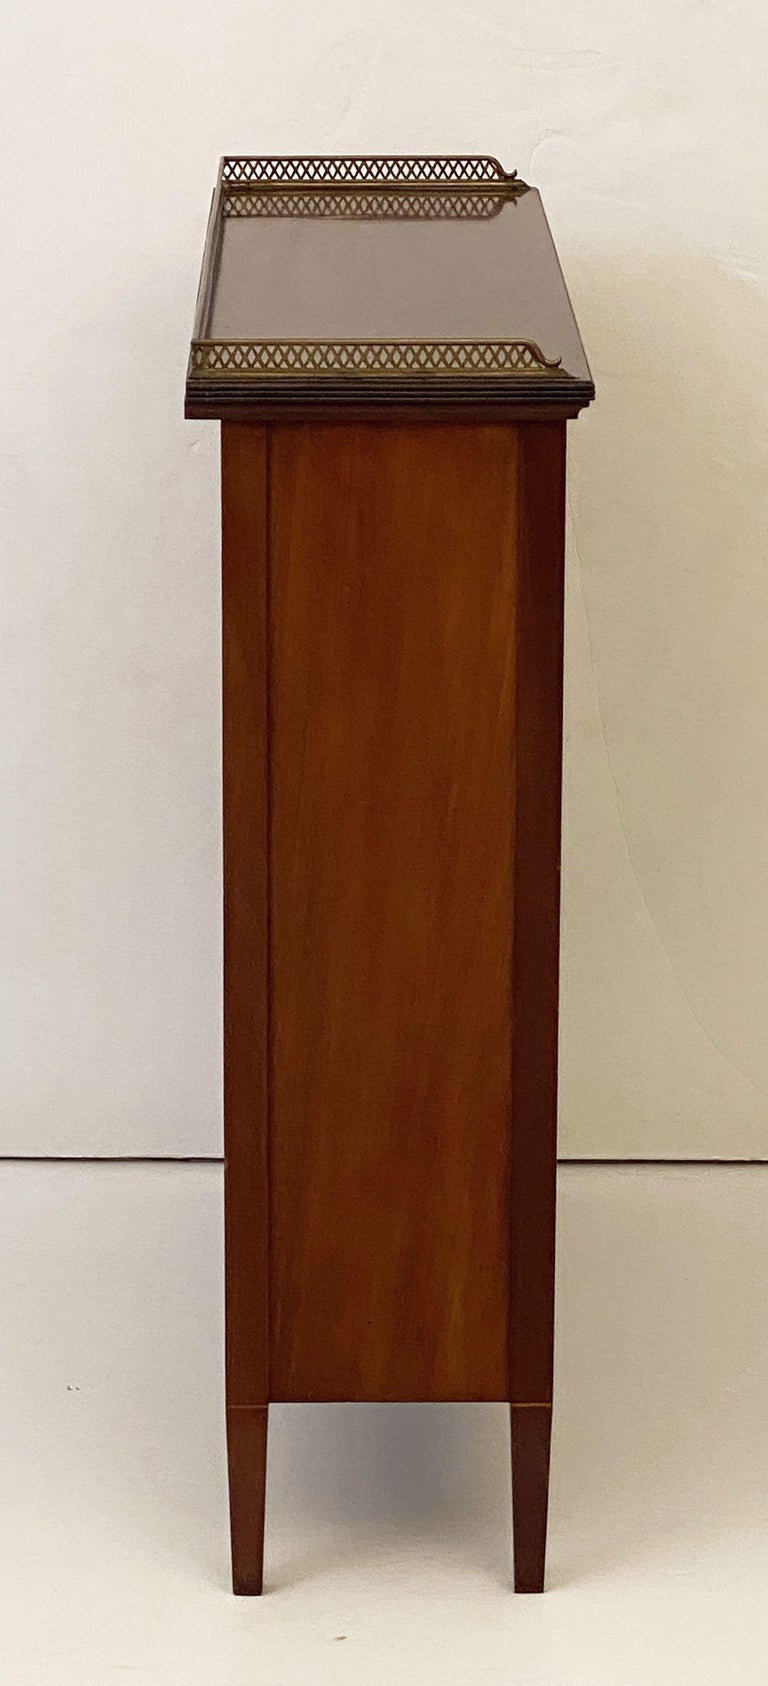 English Open Bookcase of Inlaid Mahogany from the Edwardian Period For Sale 5